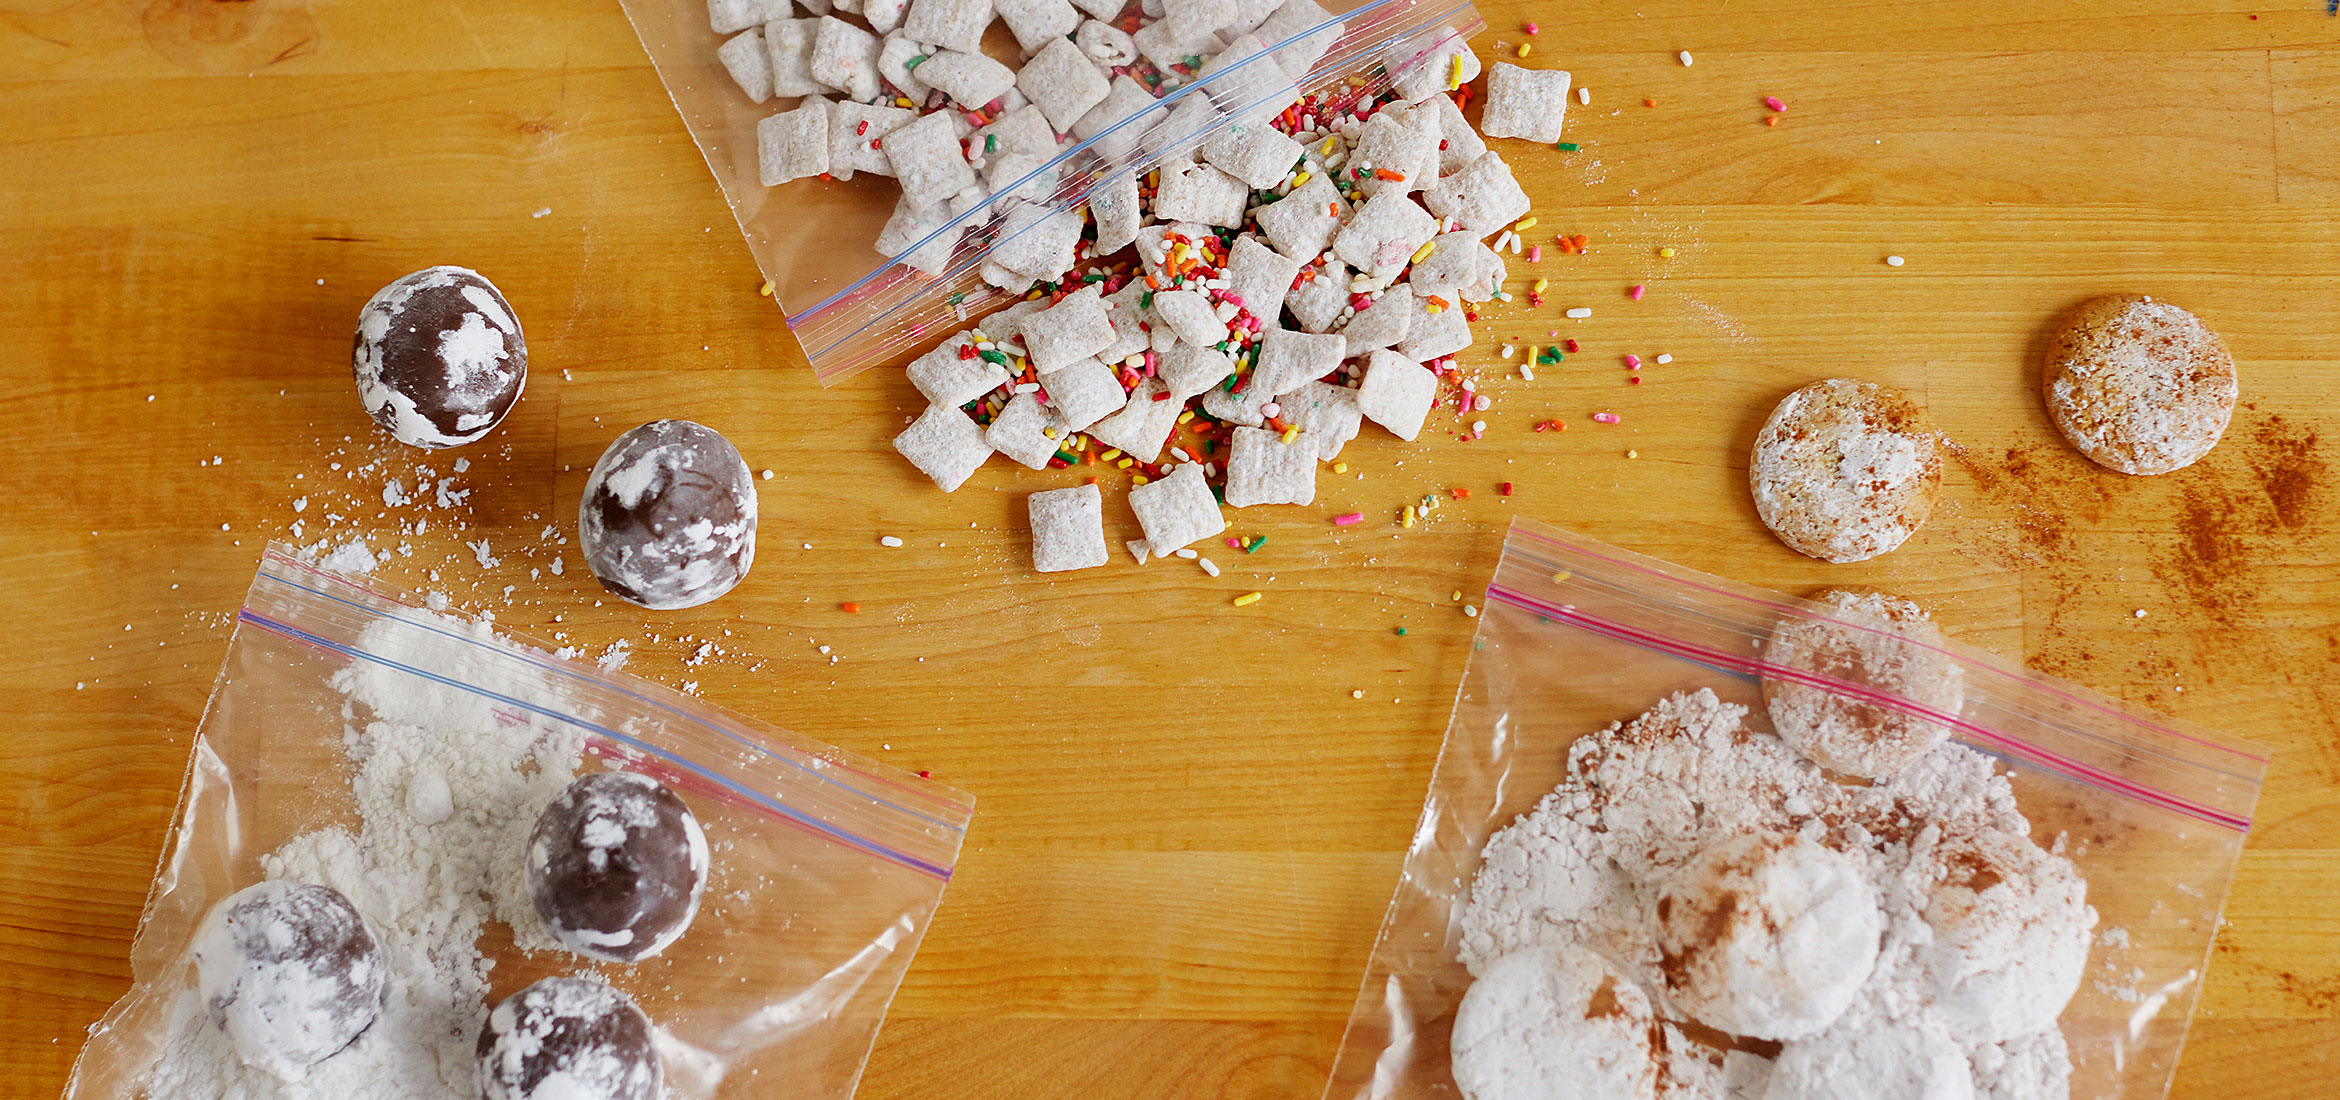 Shake Up Dessert With These Shakeable Treats